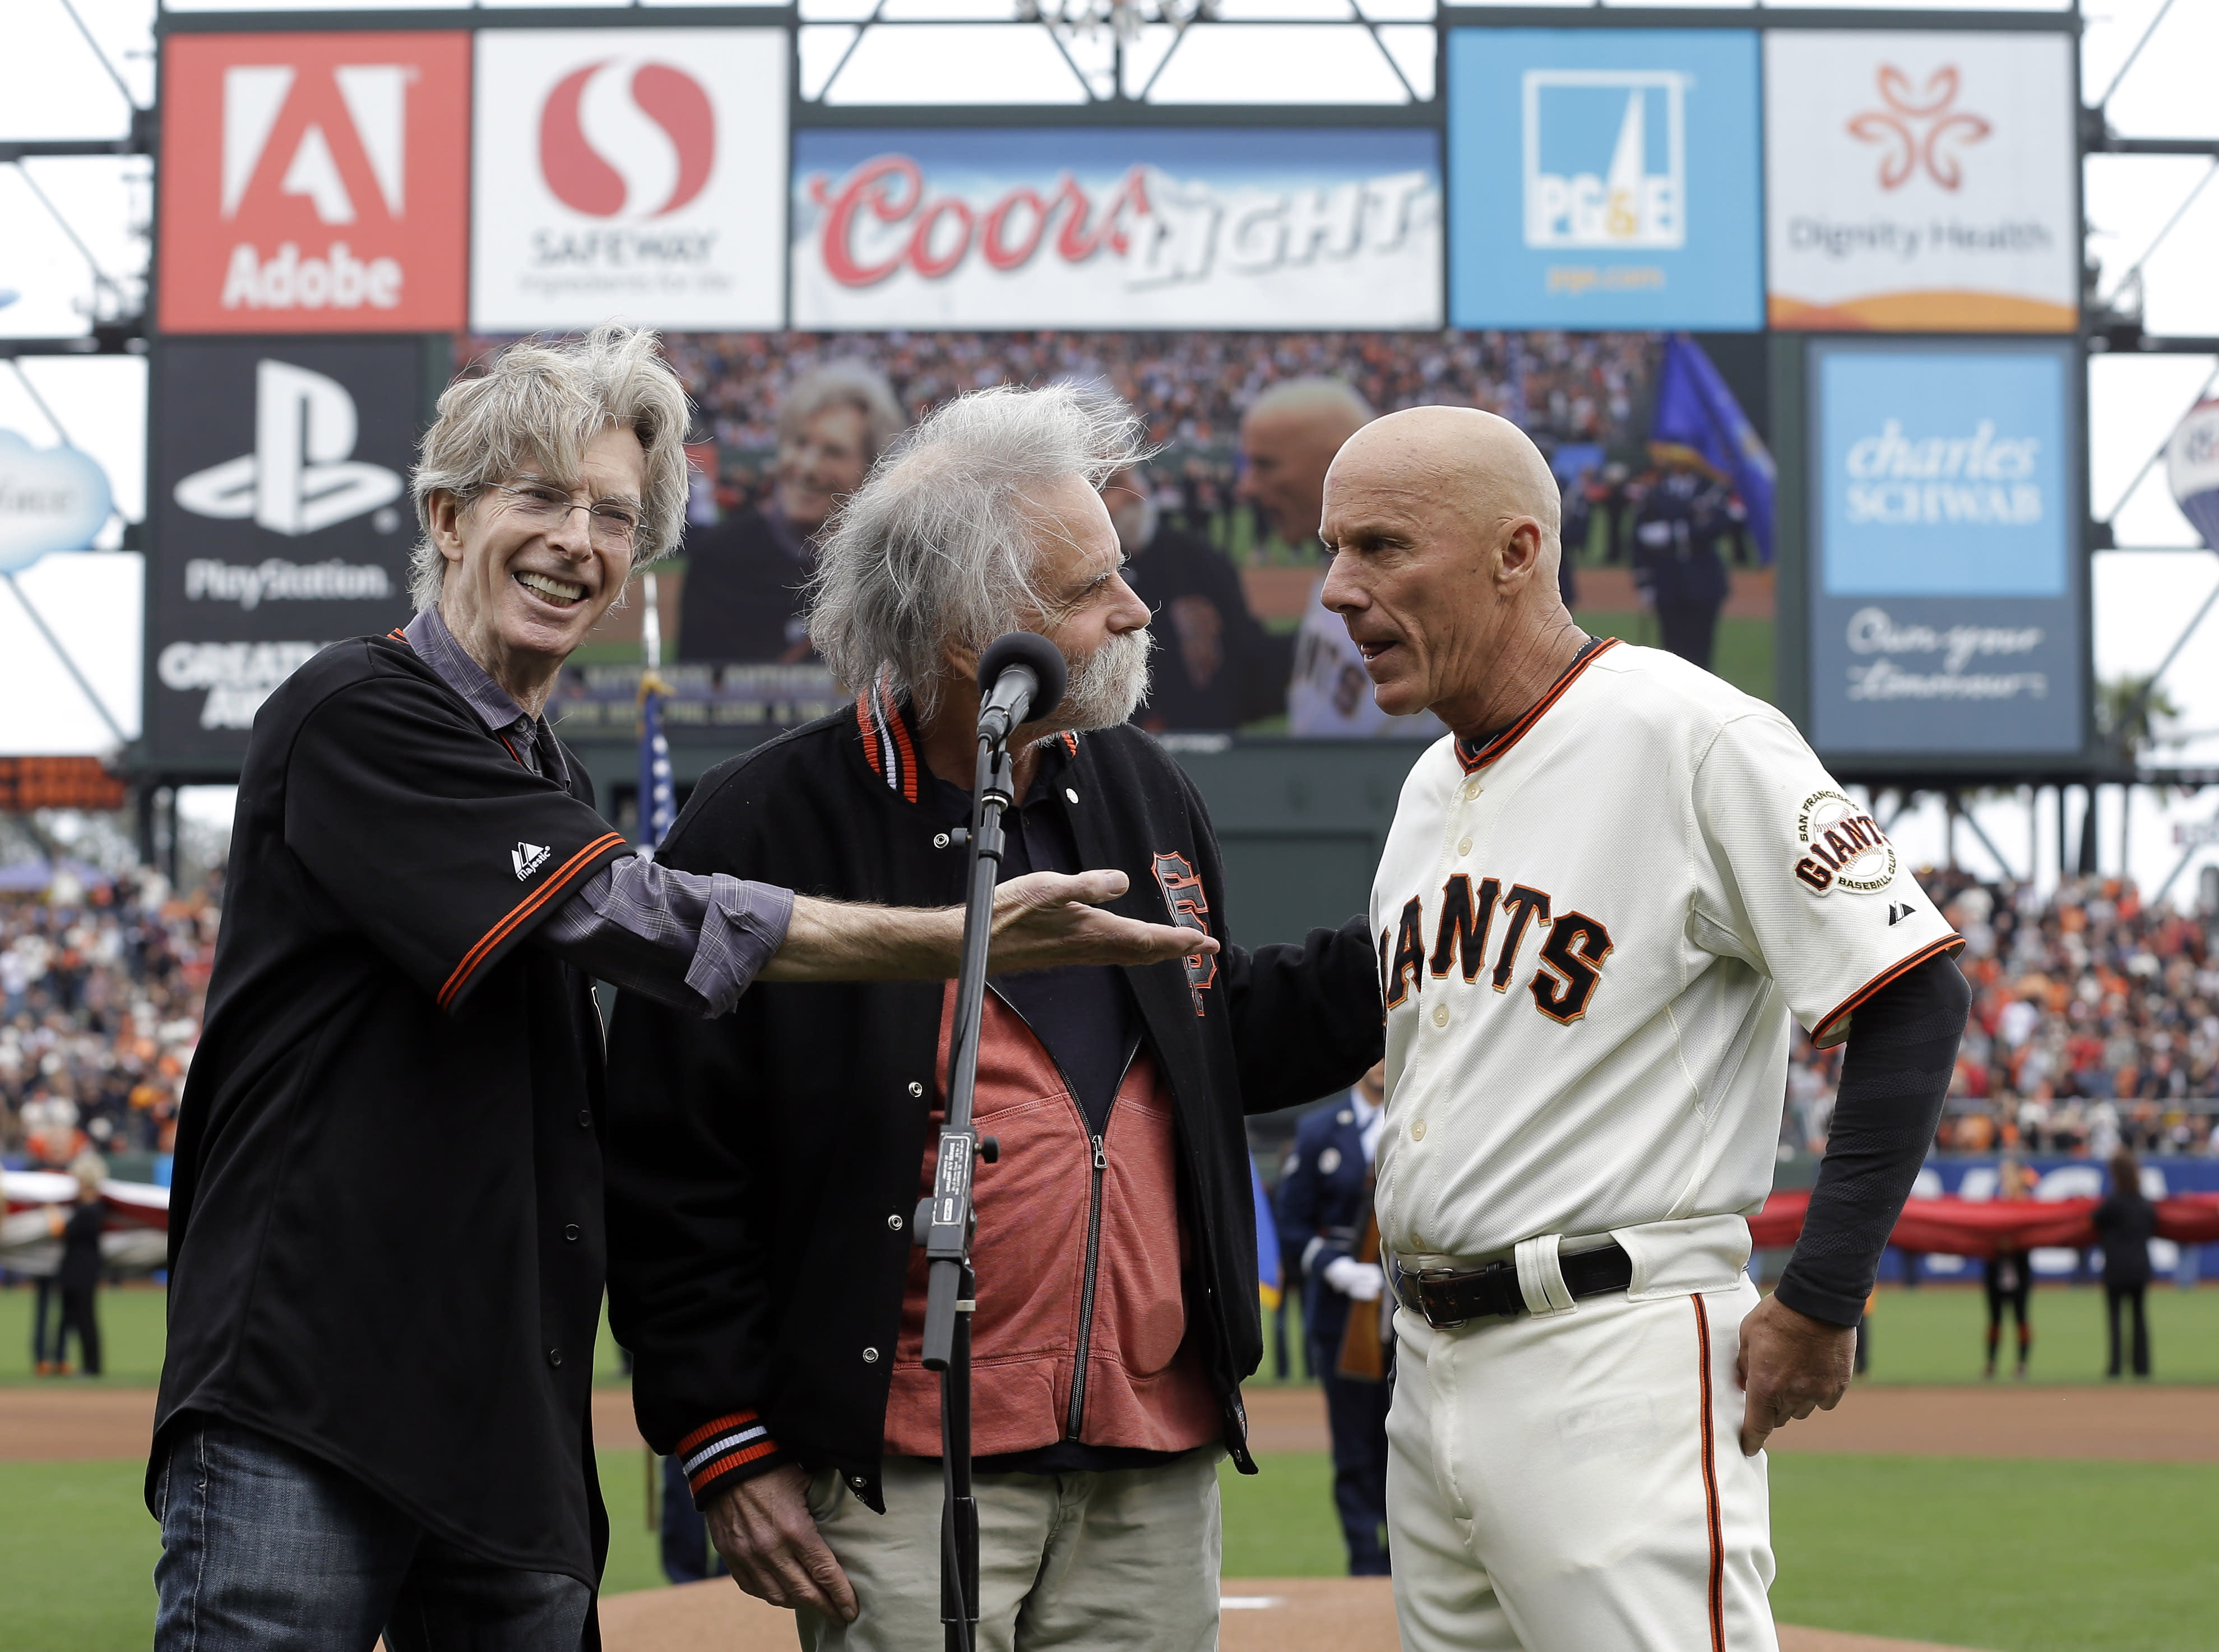 Tim Flannery is fed up with Padres fans, writes lengthy statement